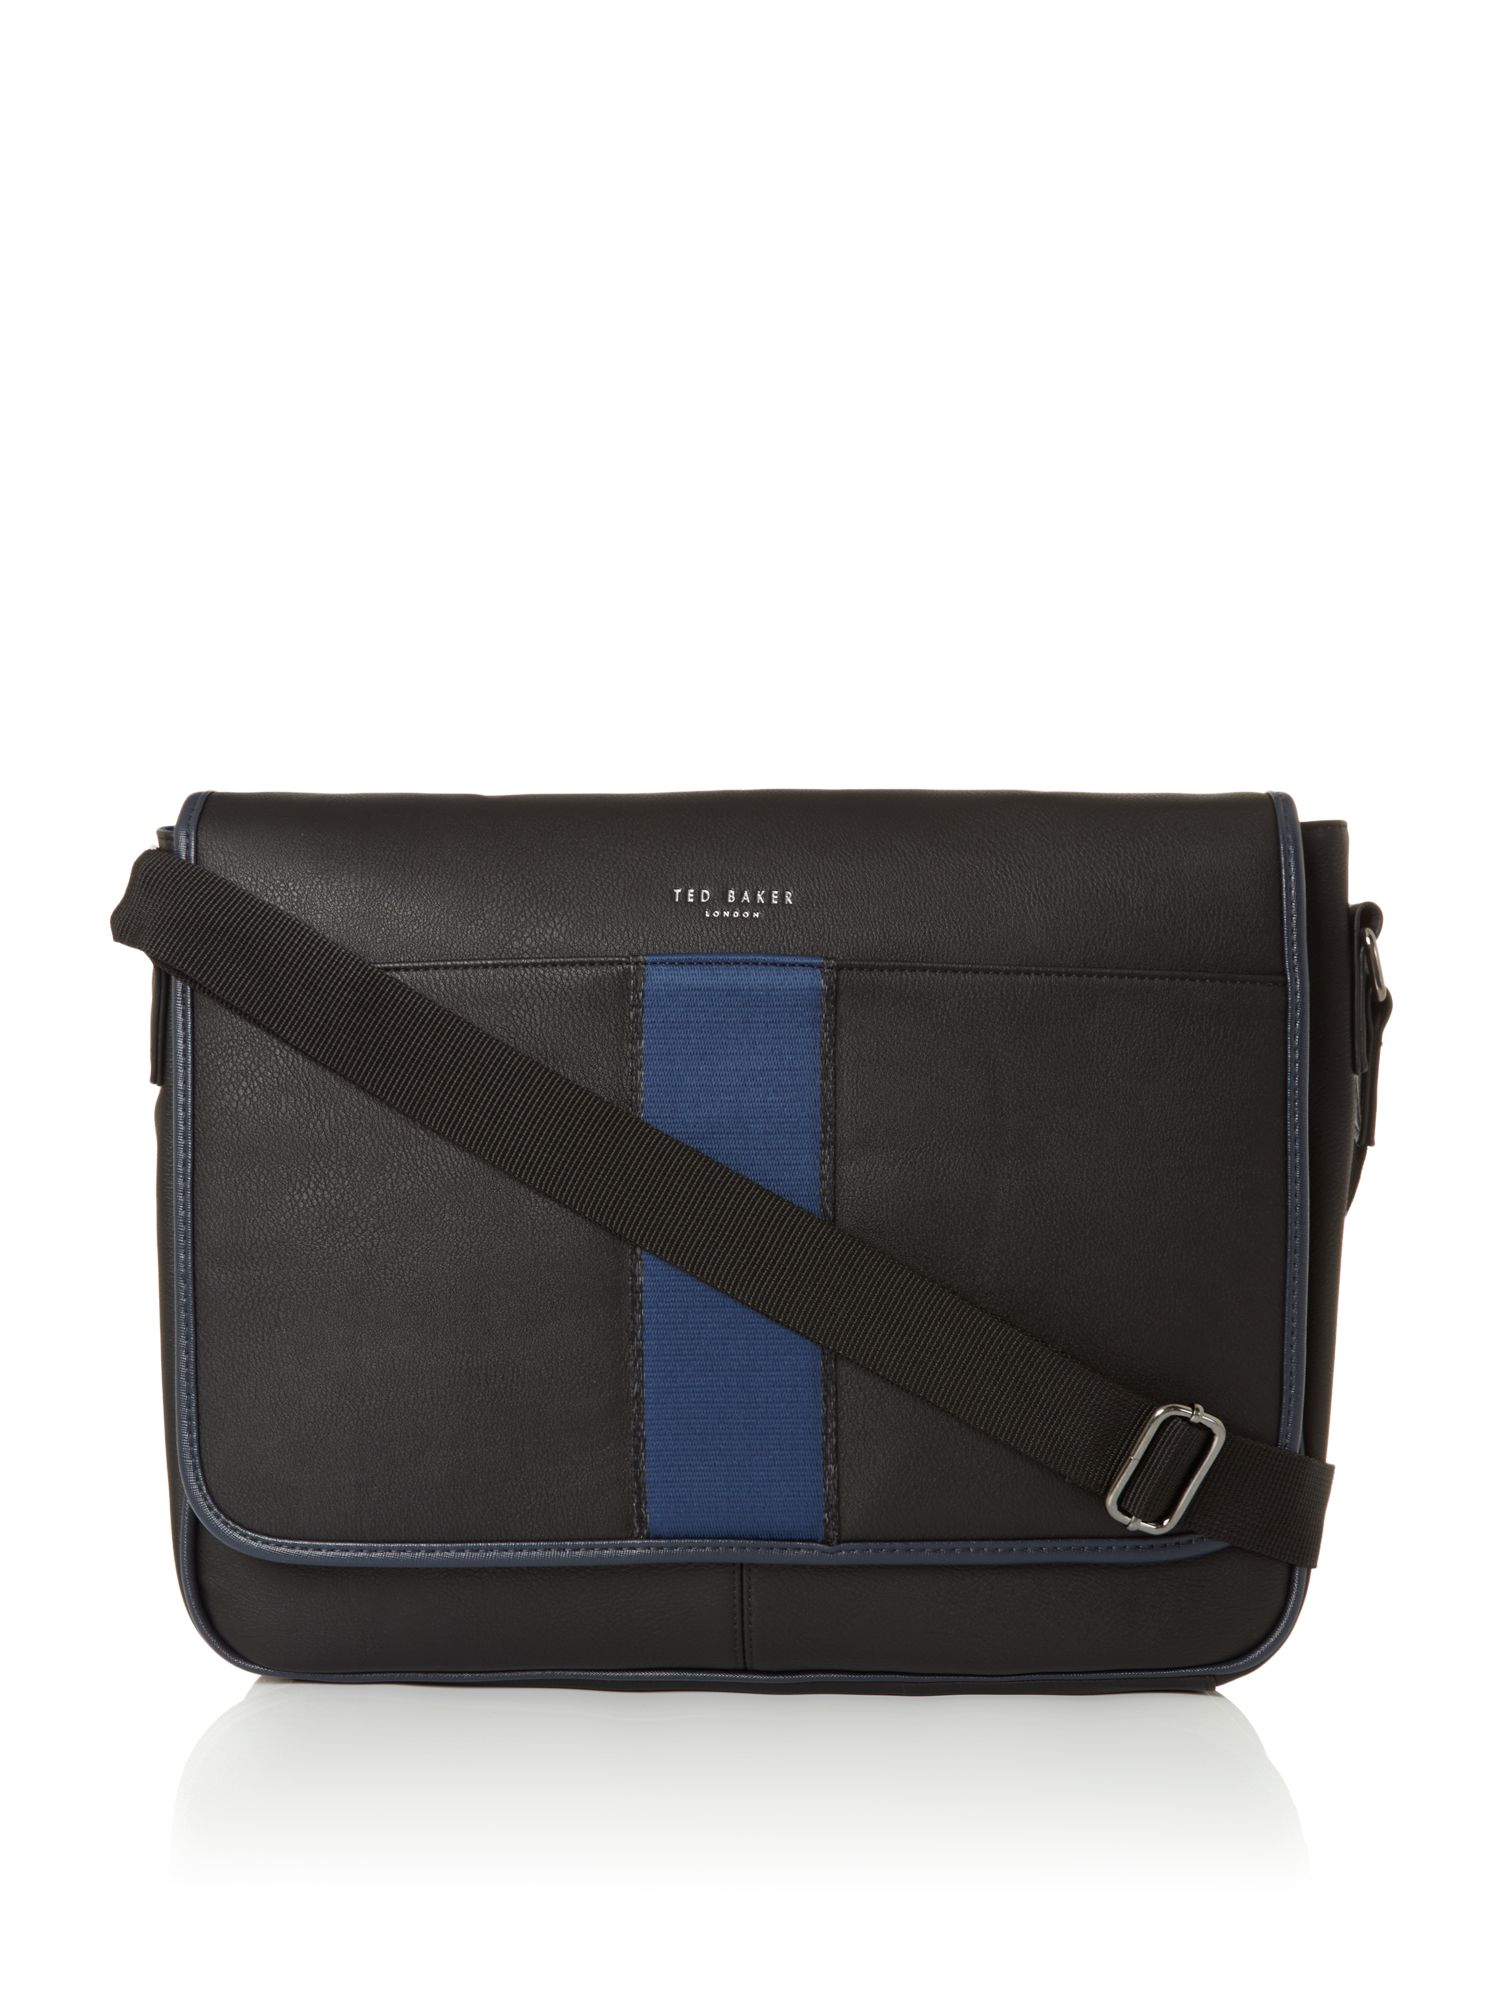 Ted Baker Webbing Despatch Bag Black